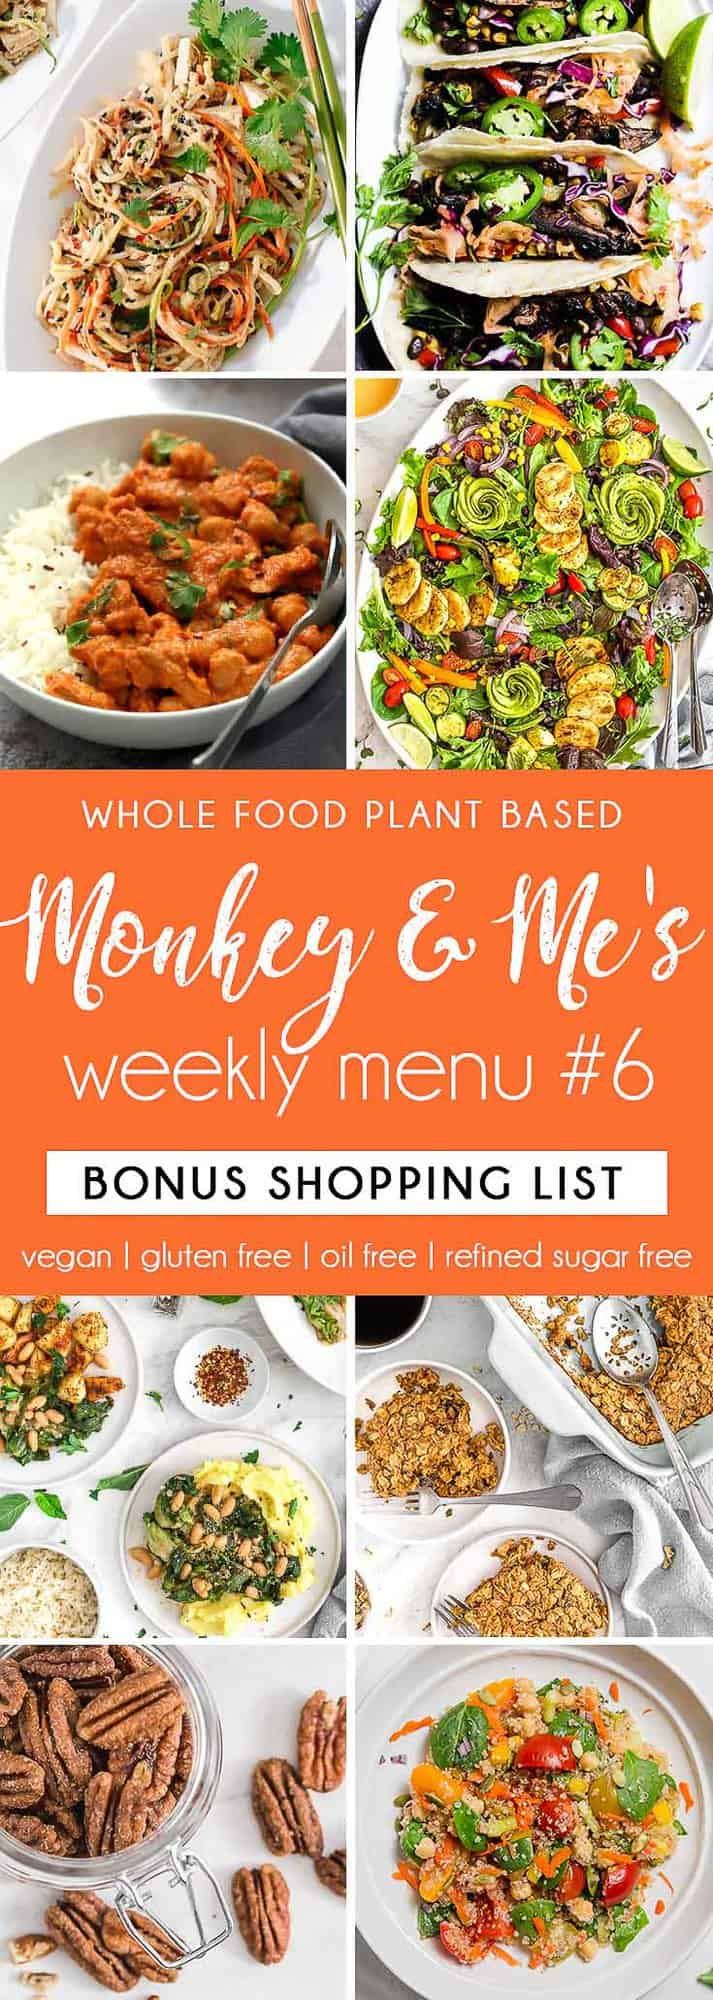 Monkey and Me's Menu, Menu 6, weekly recipe plan, menu, planner, plant based, vegan, vegetarian, whole food plant based, gluten free, recipe, wfpb, healthy, healthy vegan, oil free, no refined sugar, no oil, refined sugar free, dairy free, dinner, lunch, menu, plant based menu, vegan menu, weekly menu, meal plan, vegan meal plan, plant based meal plan, shopping list